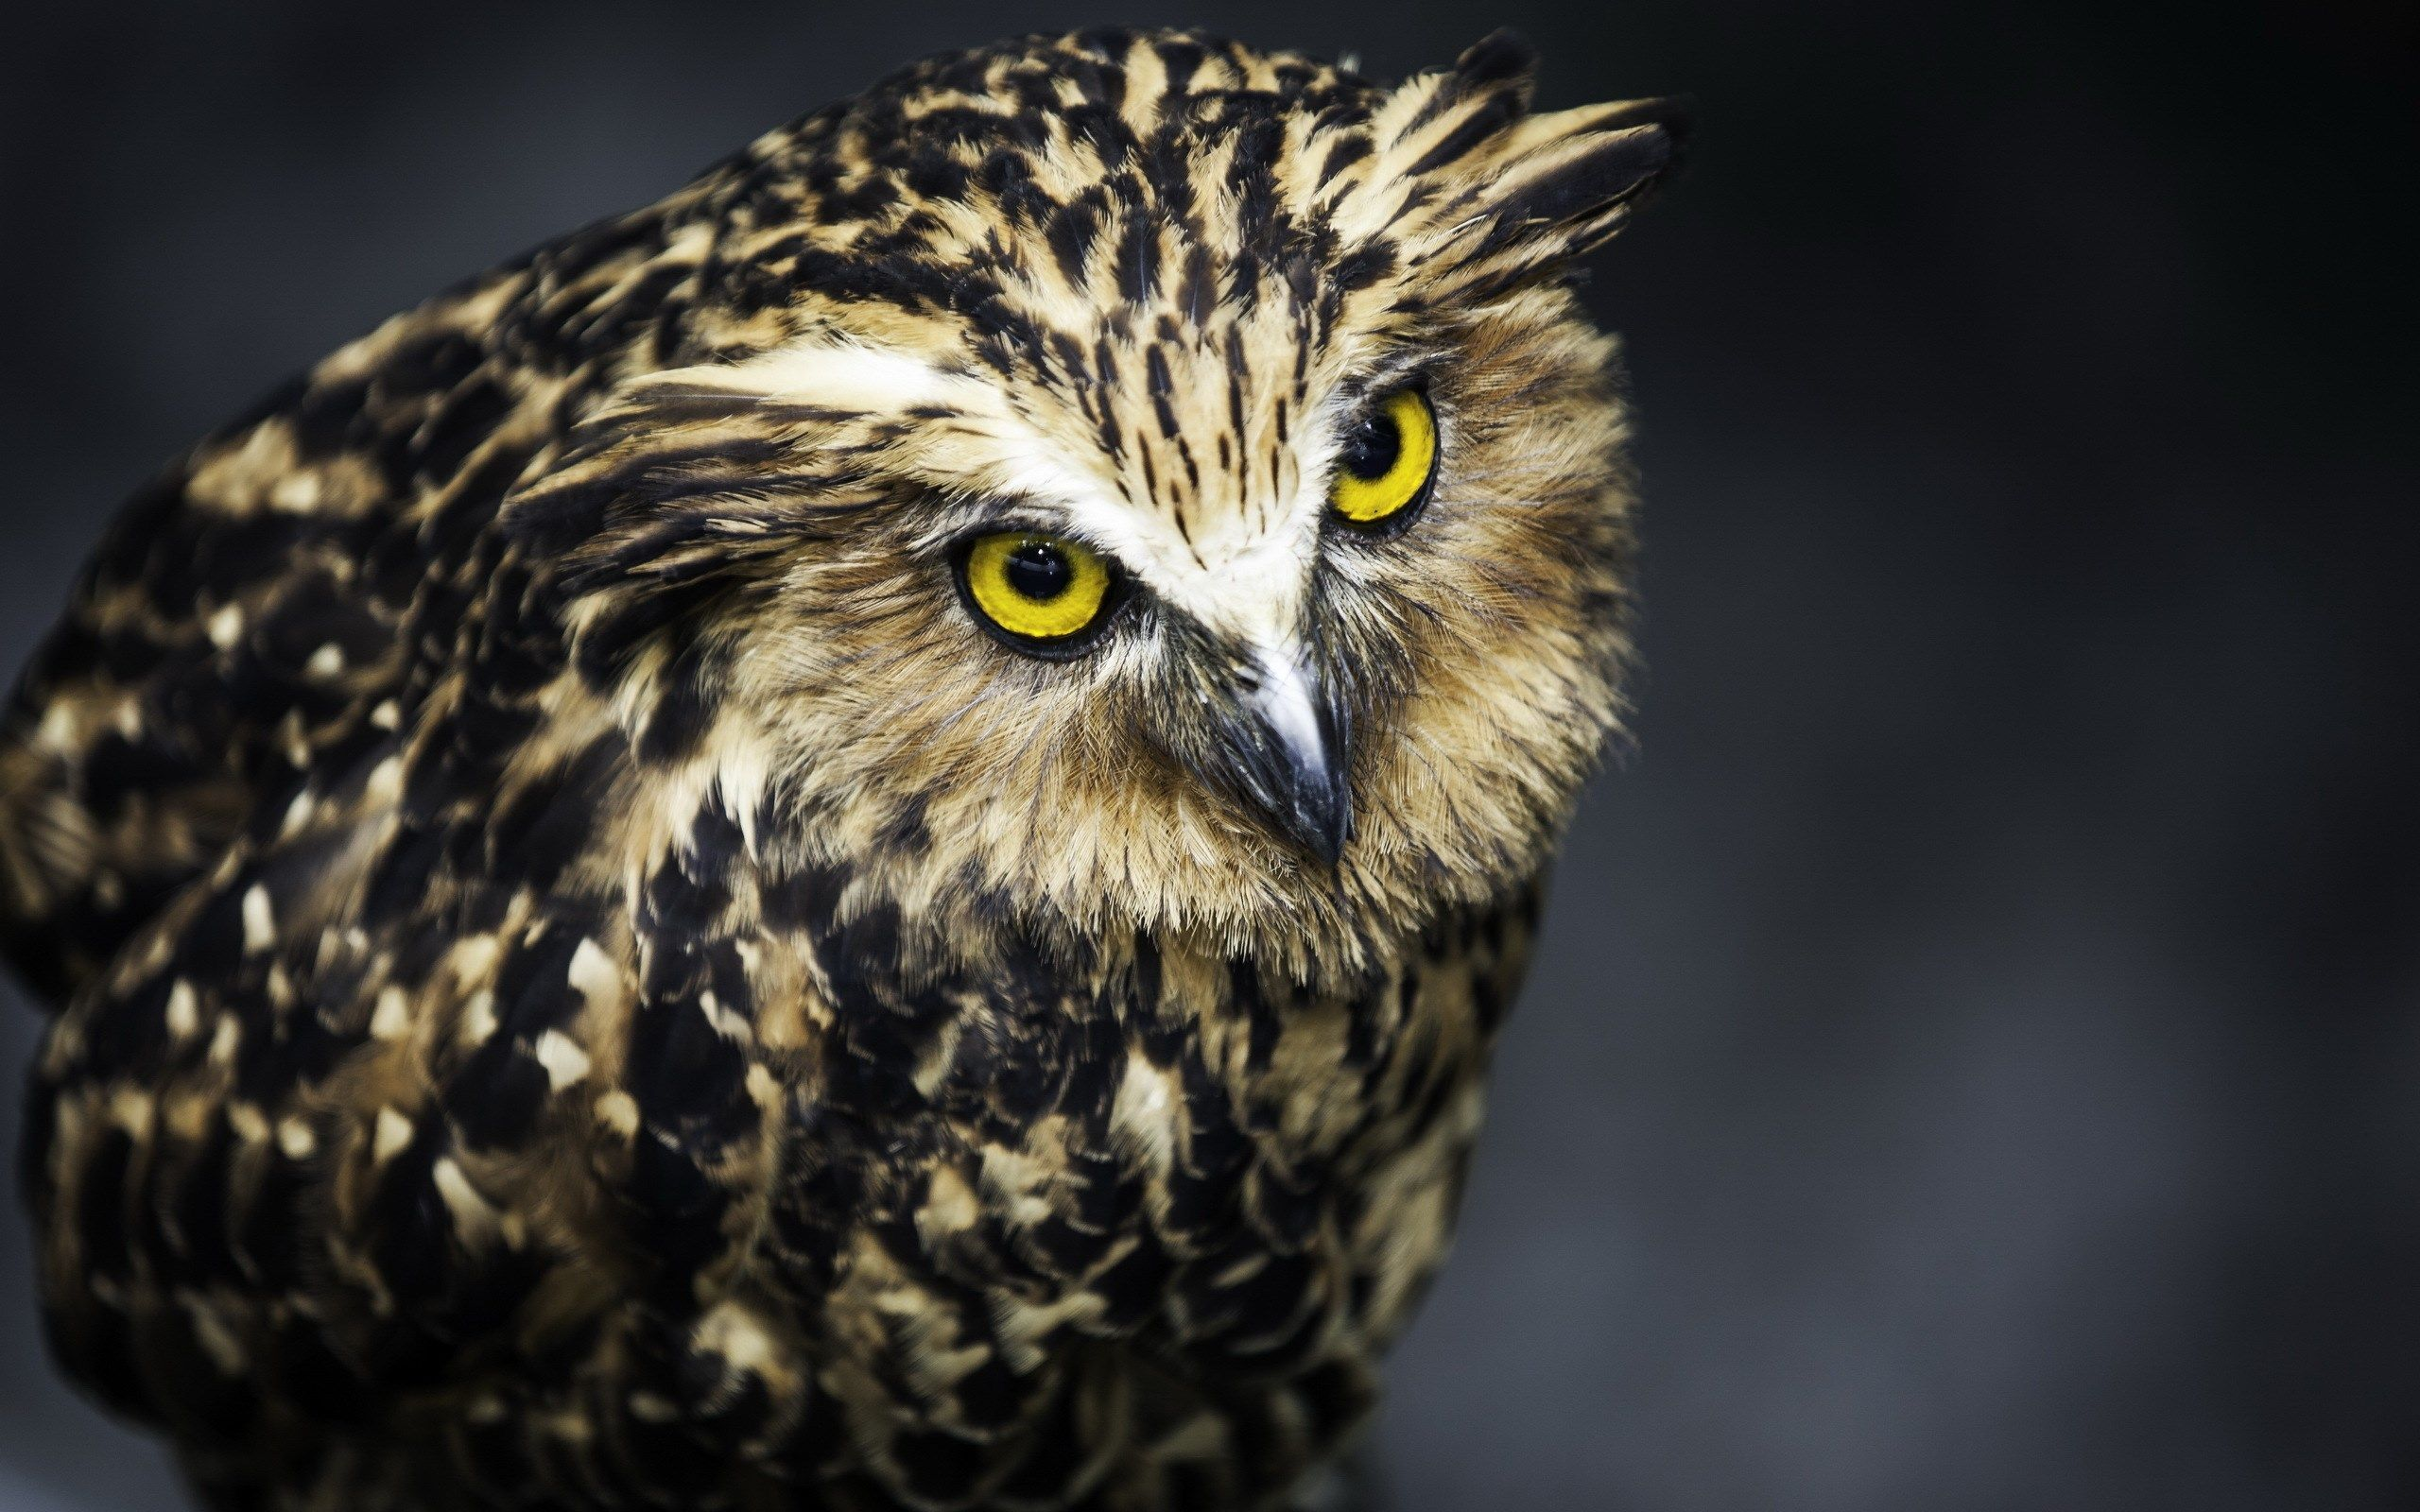 20170327 Free screensaver owl picture 1456953 Owl